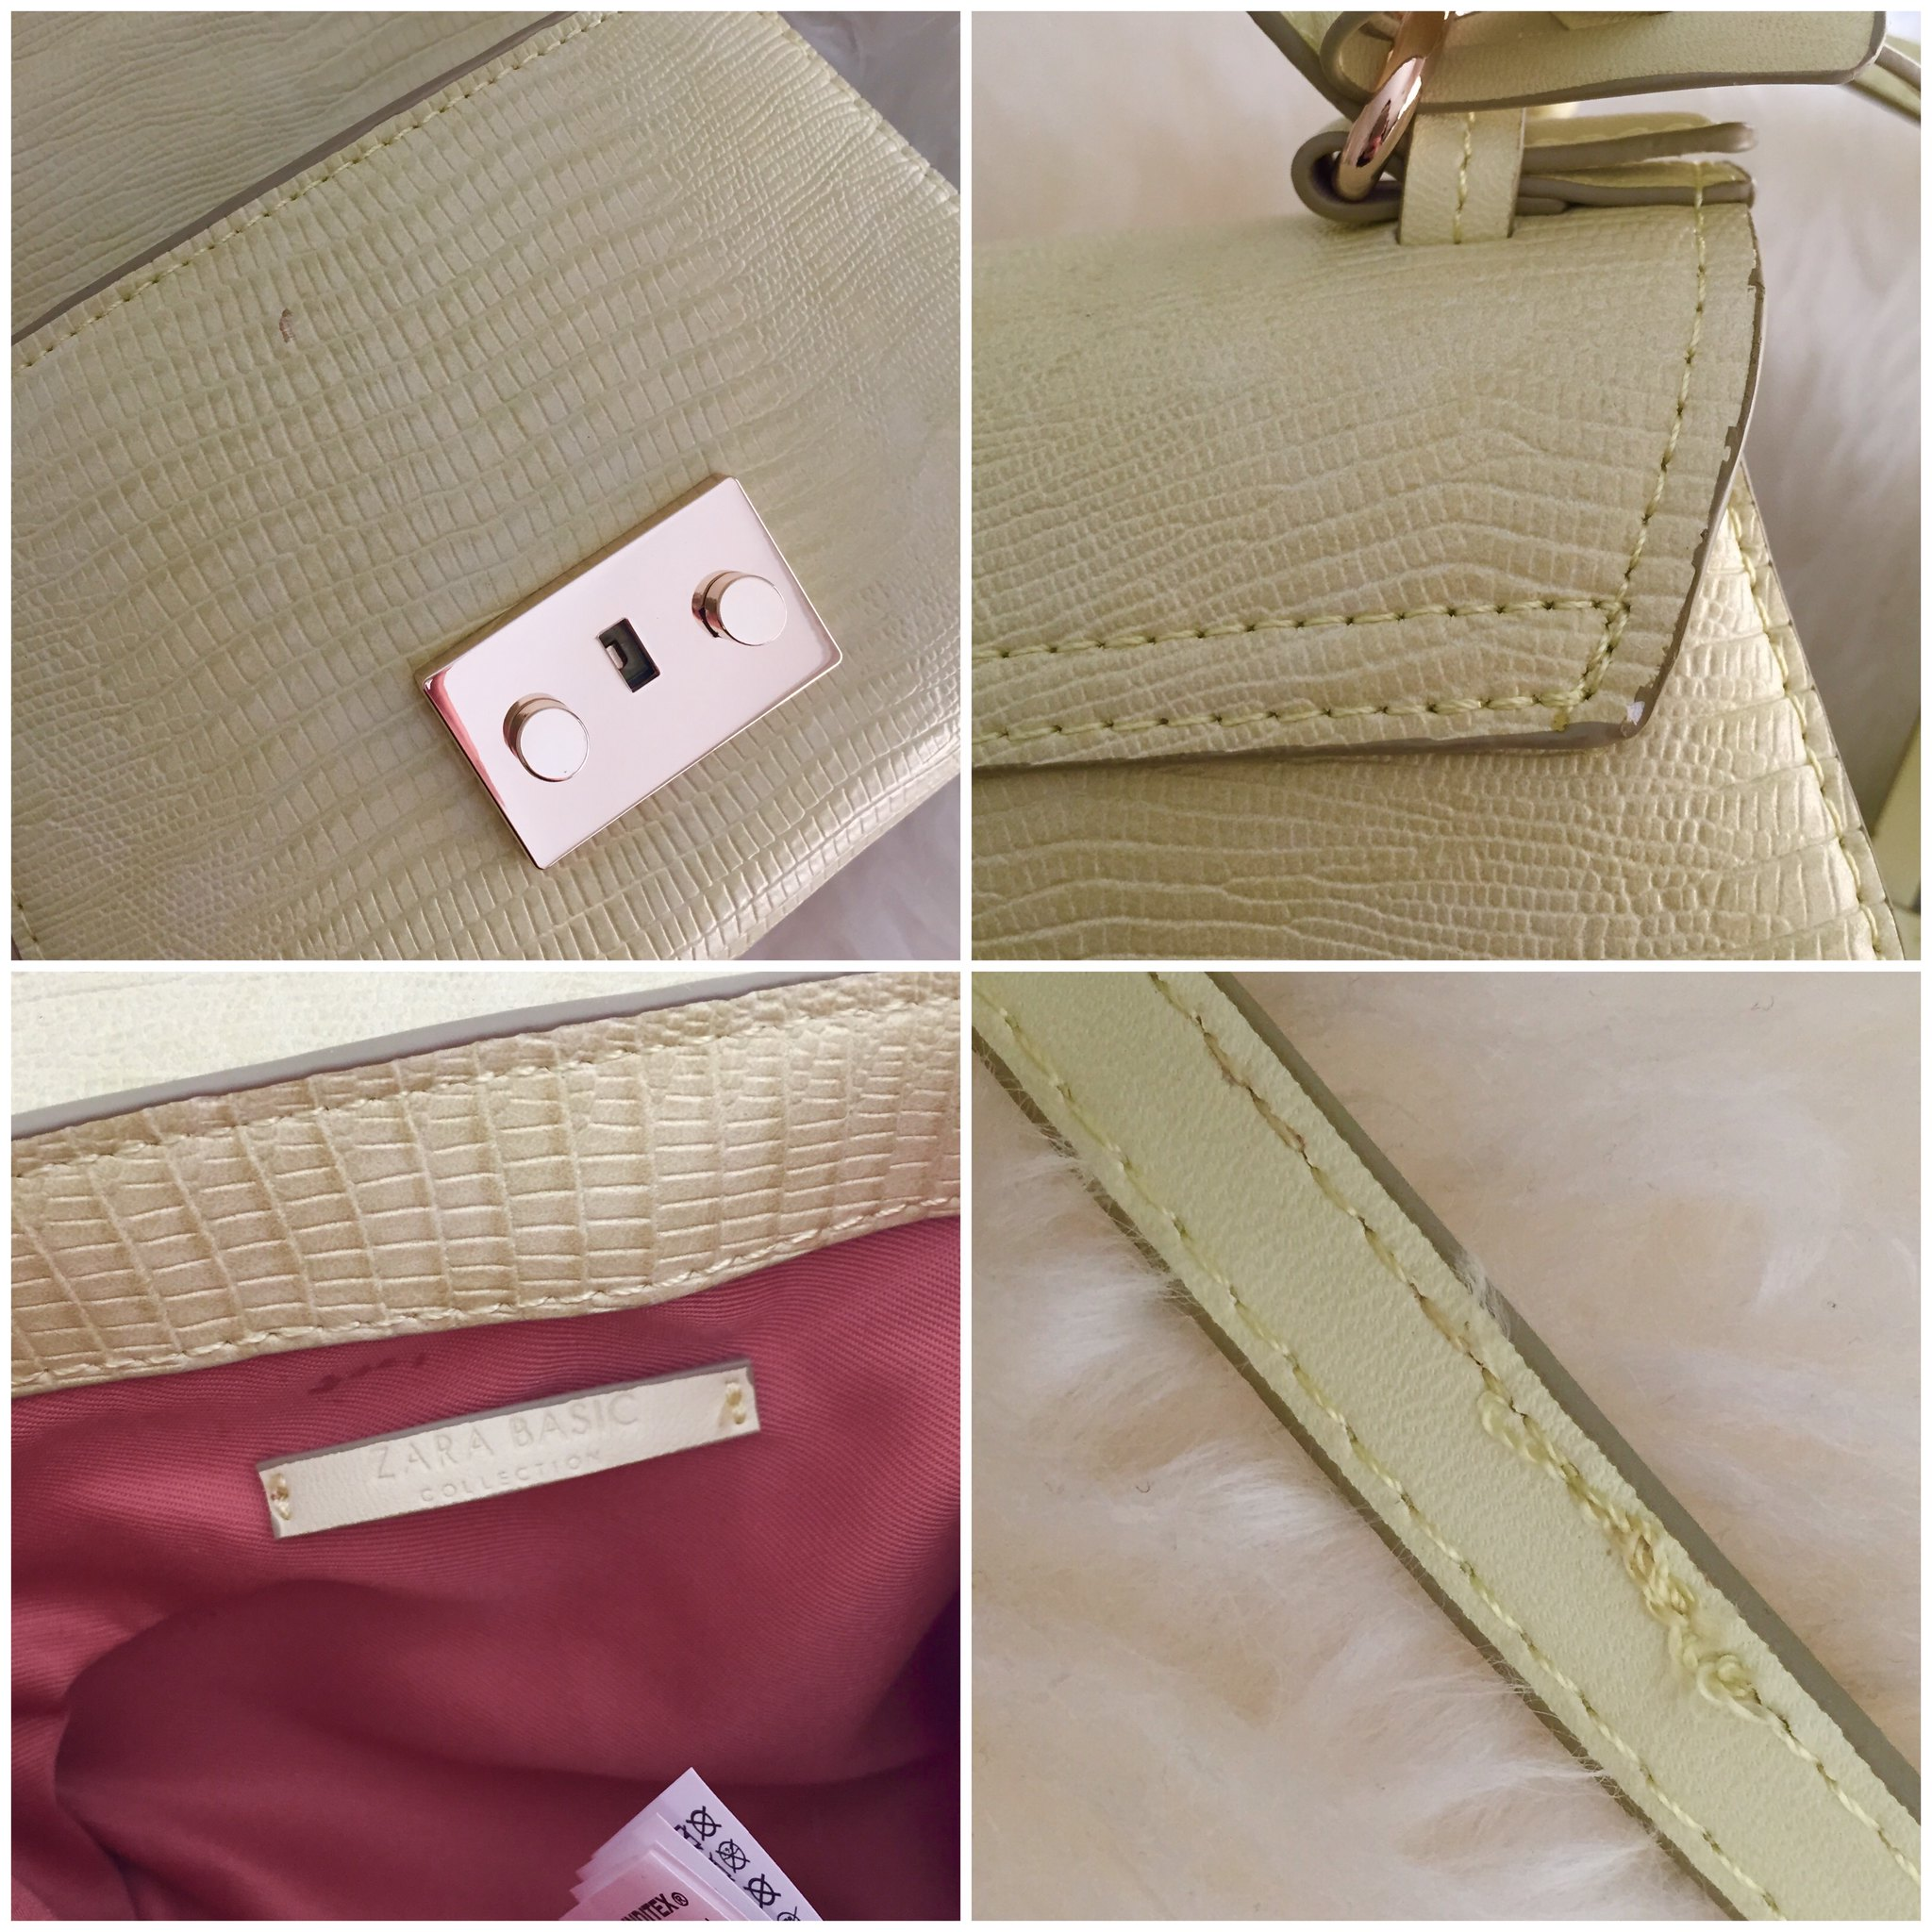 Zara Mini City Bag in Lime Green (item no. 4498/0004) - defects